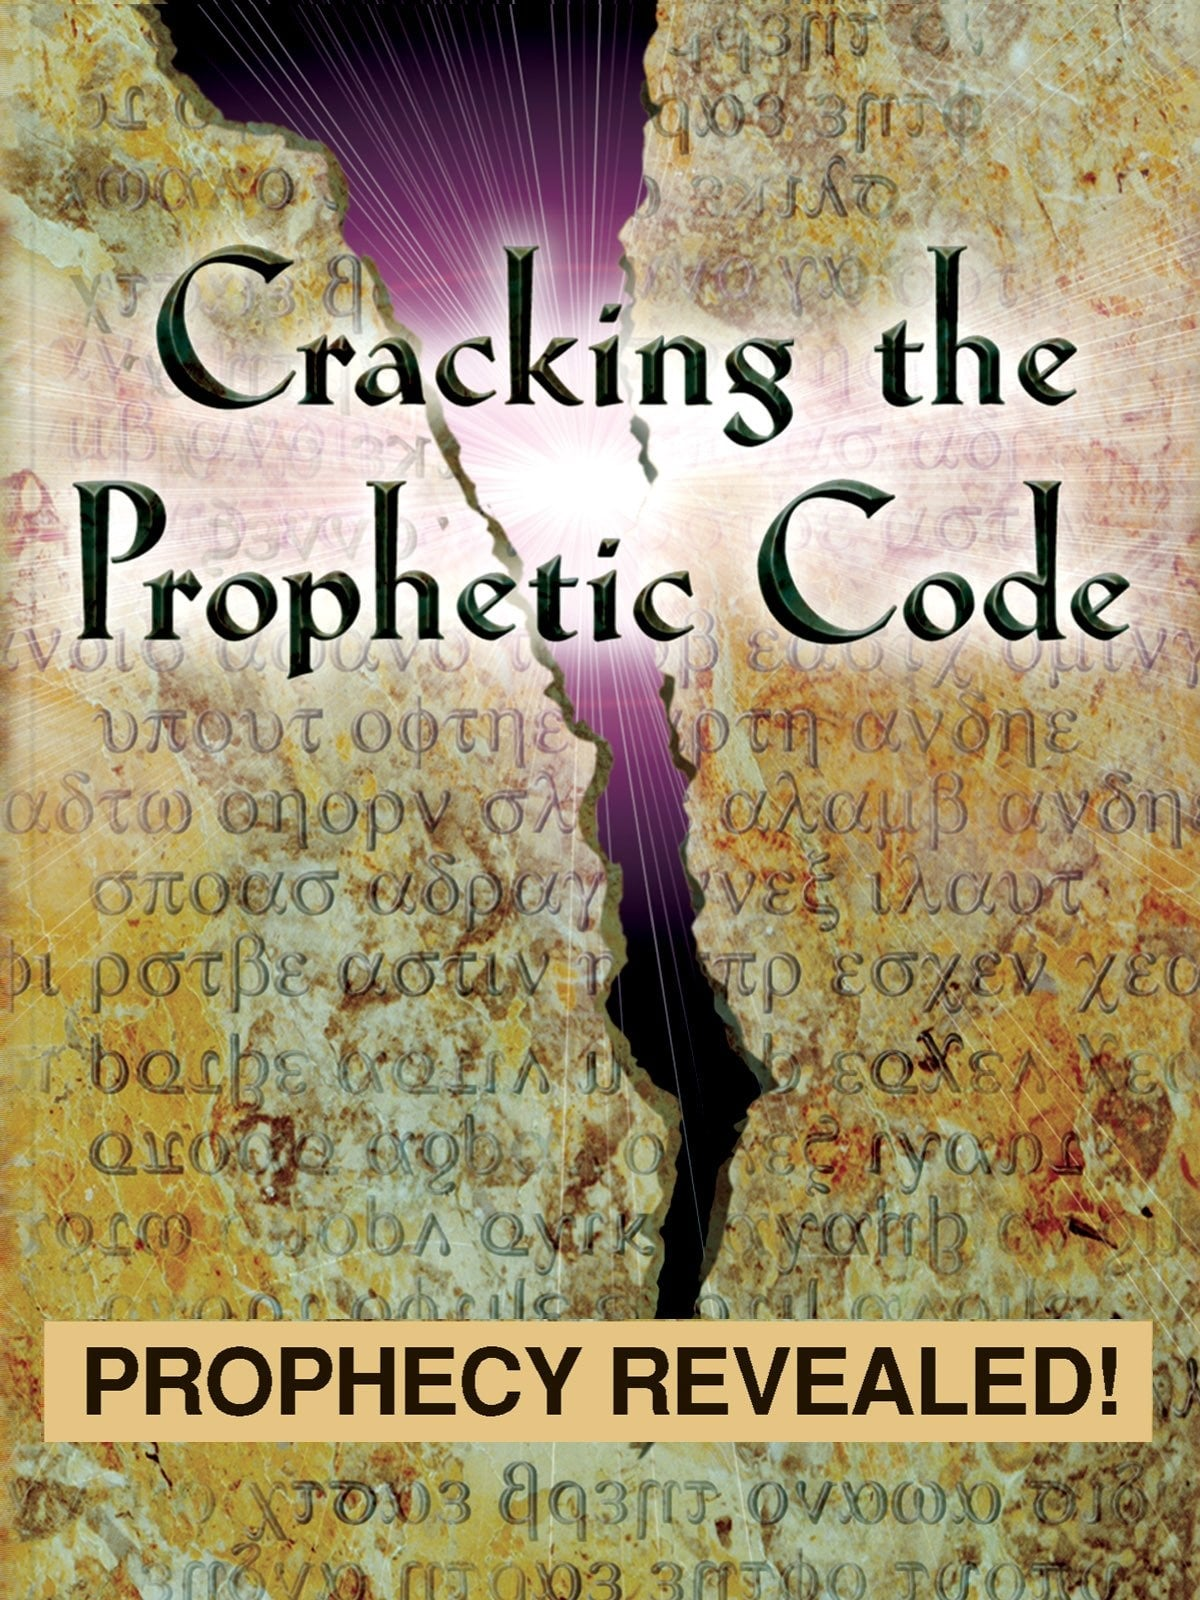 Cracking The Prophetic Code - Prophecy Revealed on FREECABLE TV